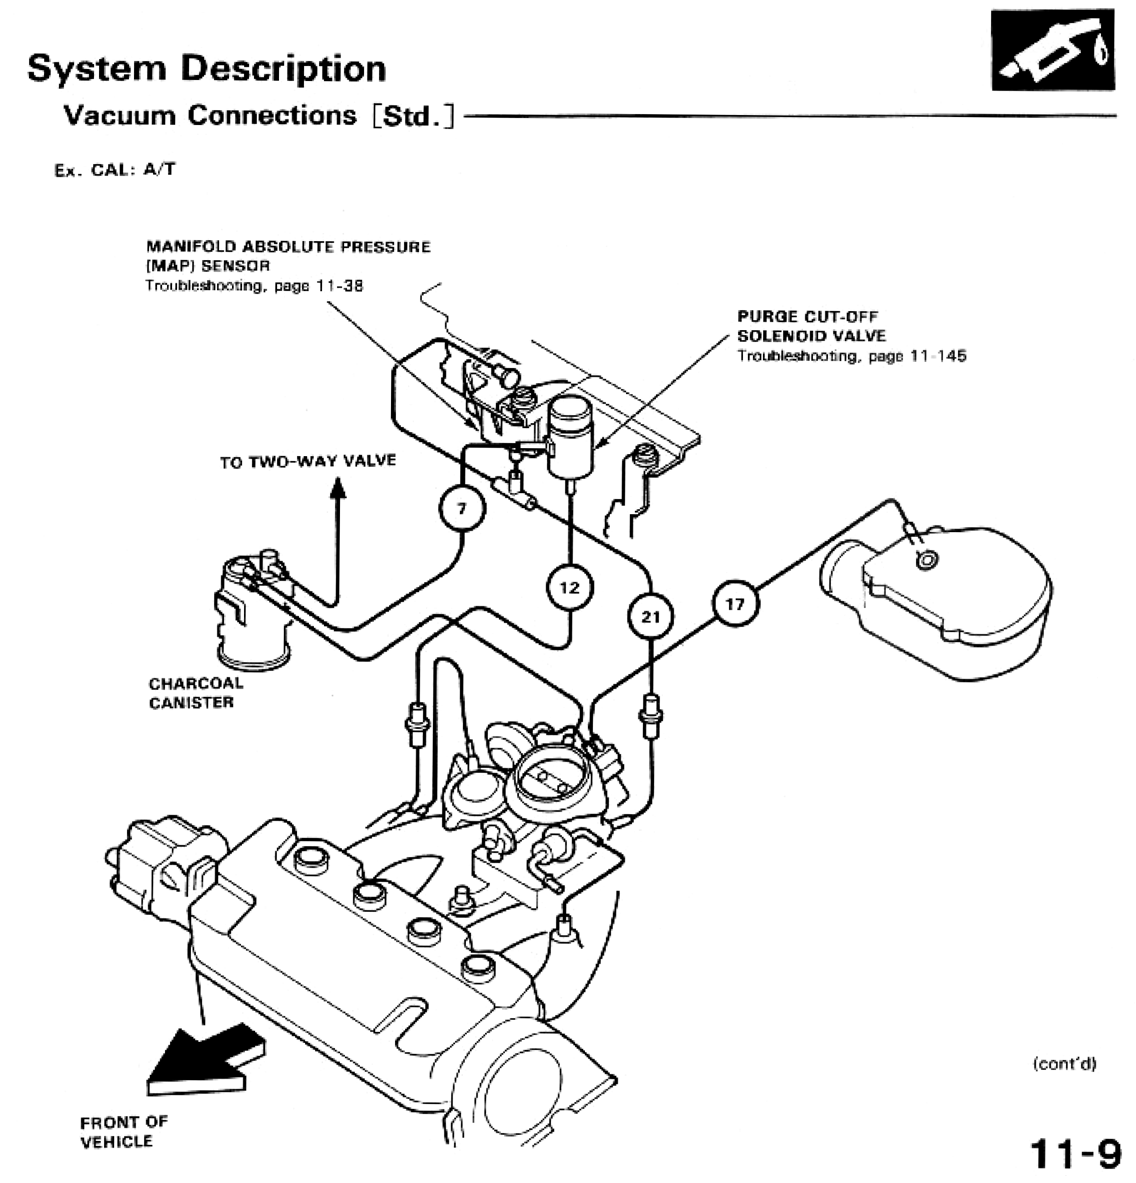 1991 Honda Civic Wiring Diagrams Online. 1991 Honda Civic